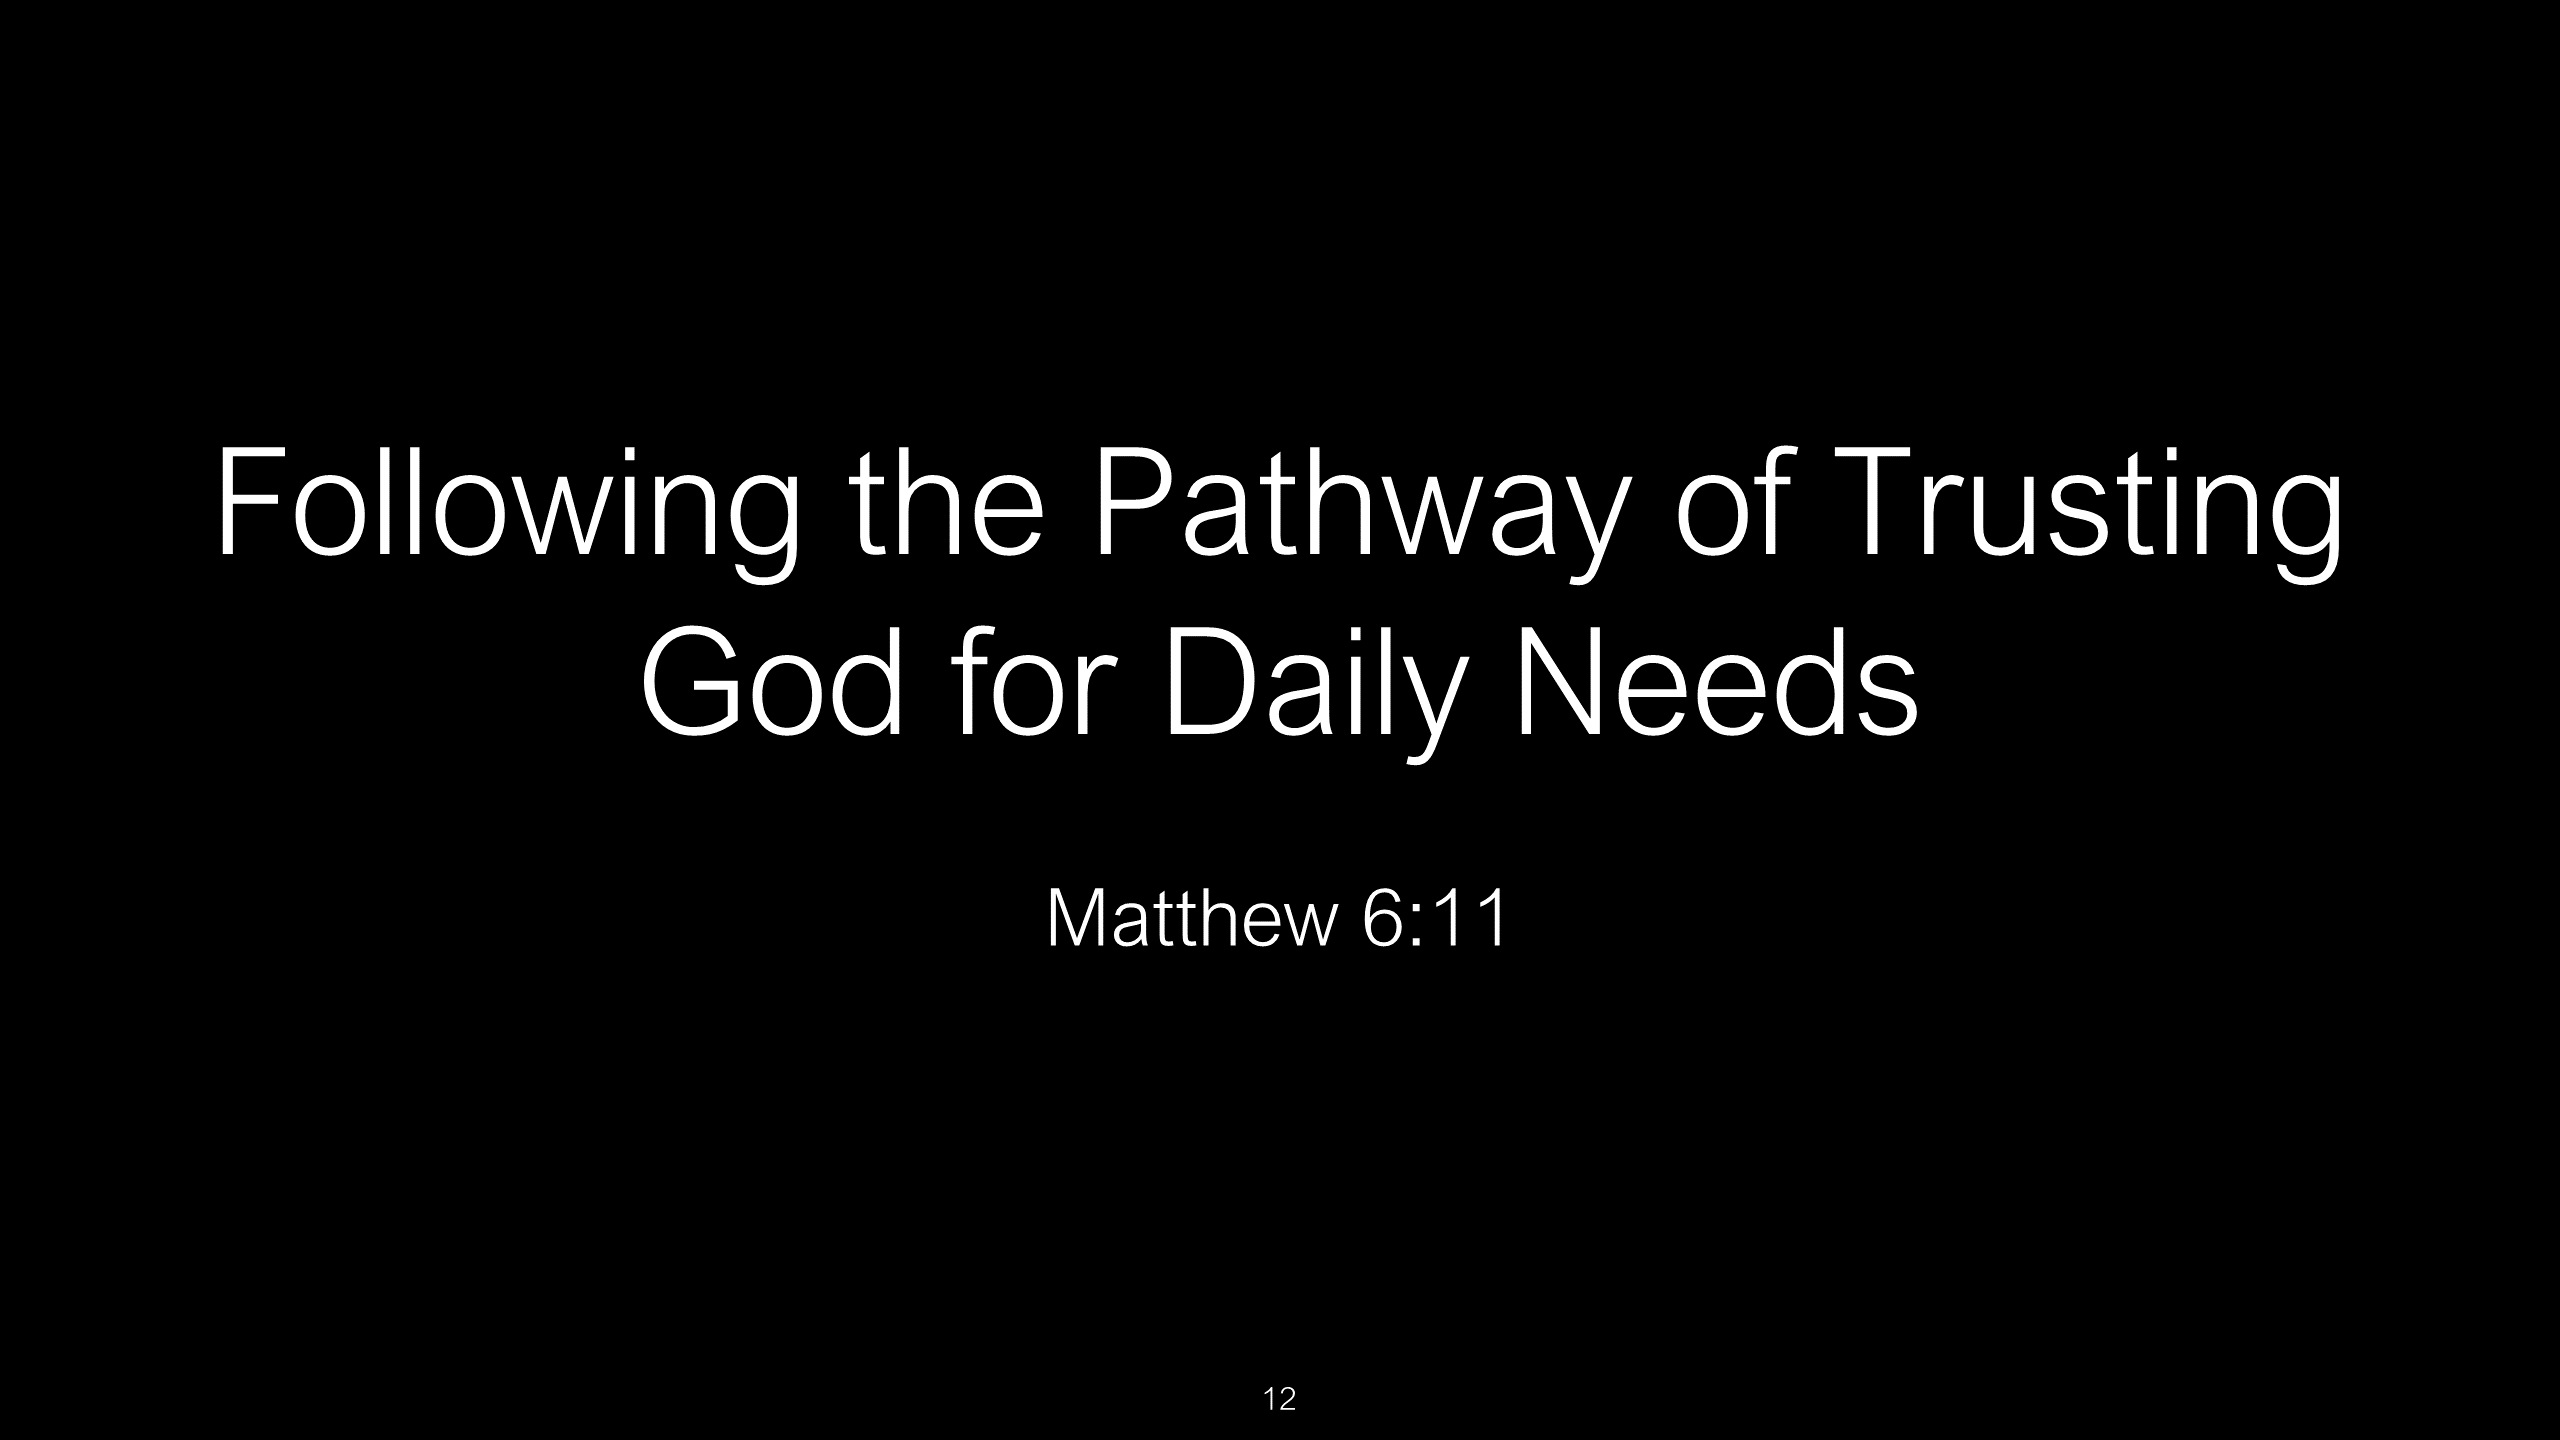 SWS-10 - Following Christ - The Path Jesus Left For Our Safety (12)